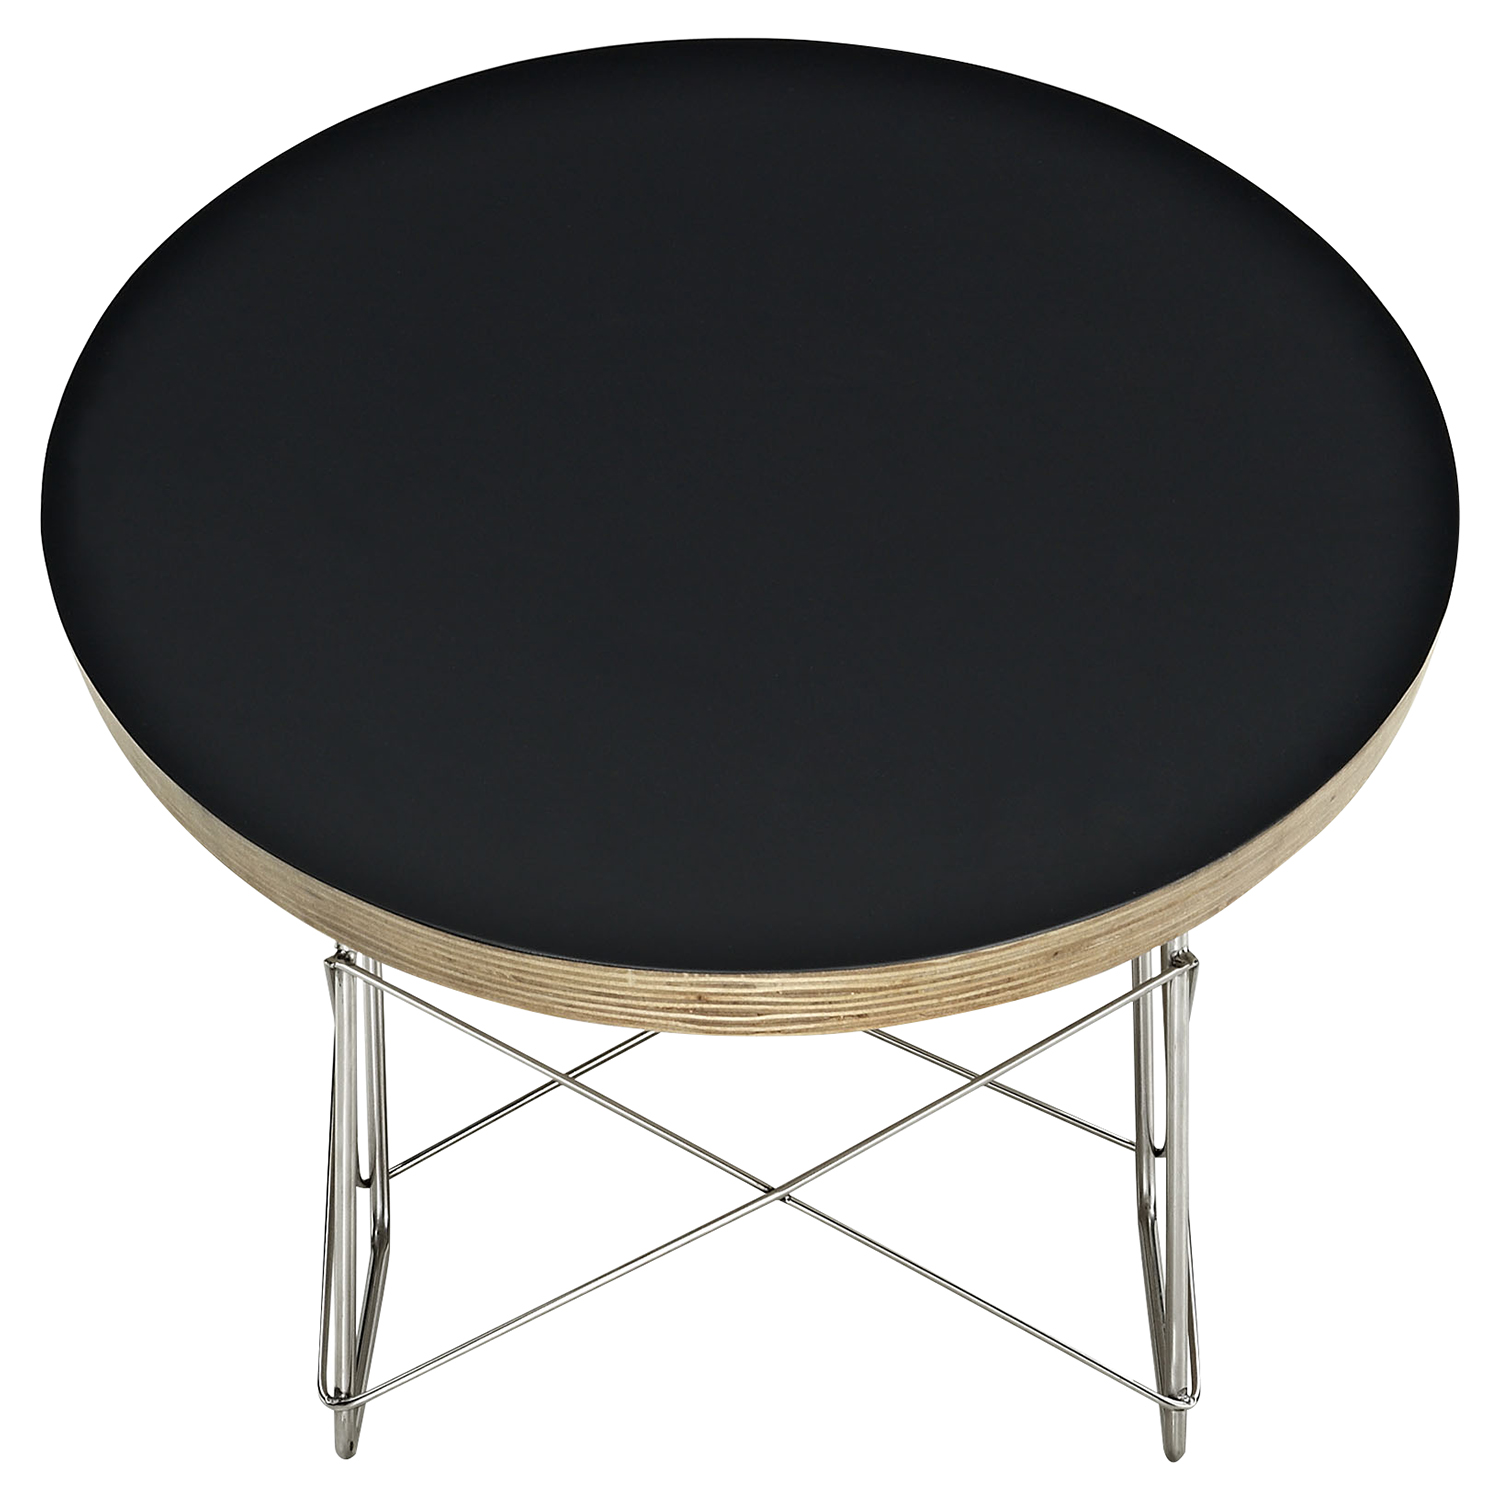 Surfboard Oval Coffee Table - Black - EEI-302-BLK